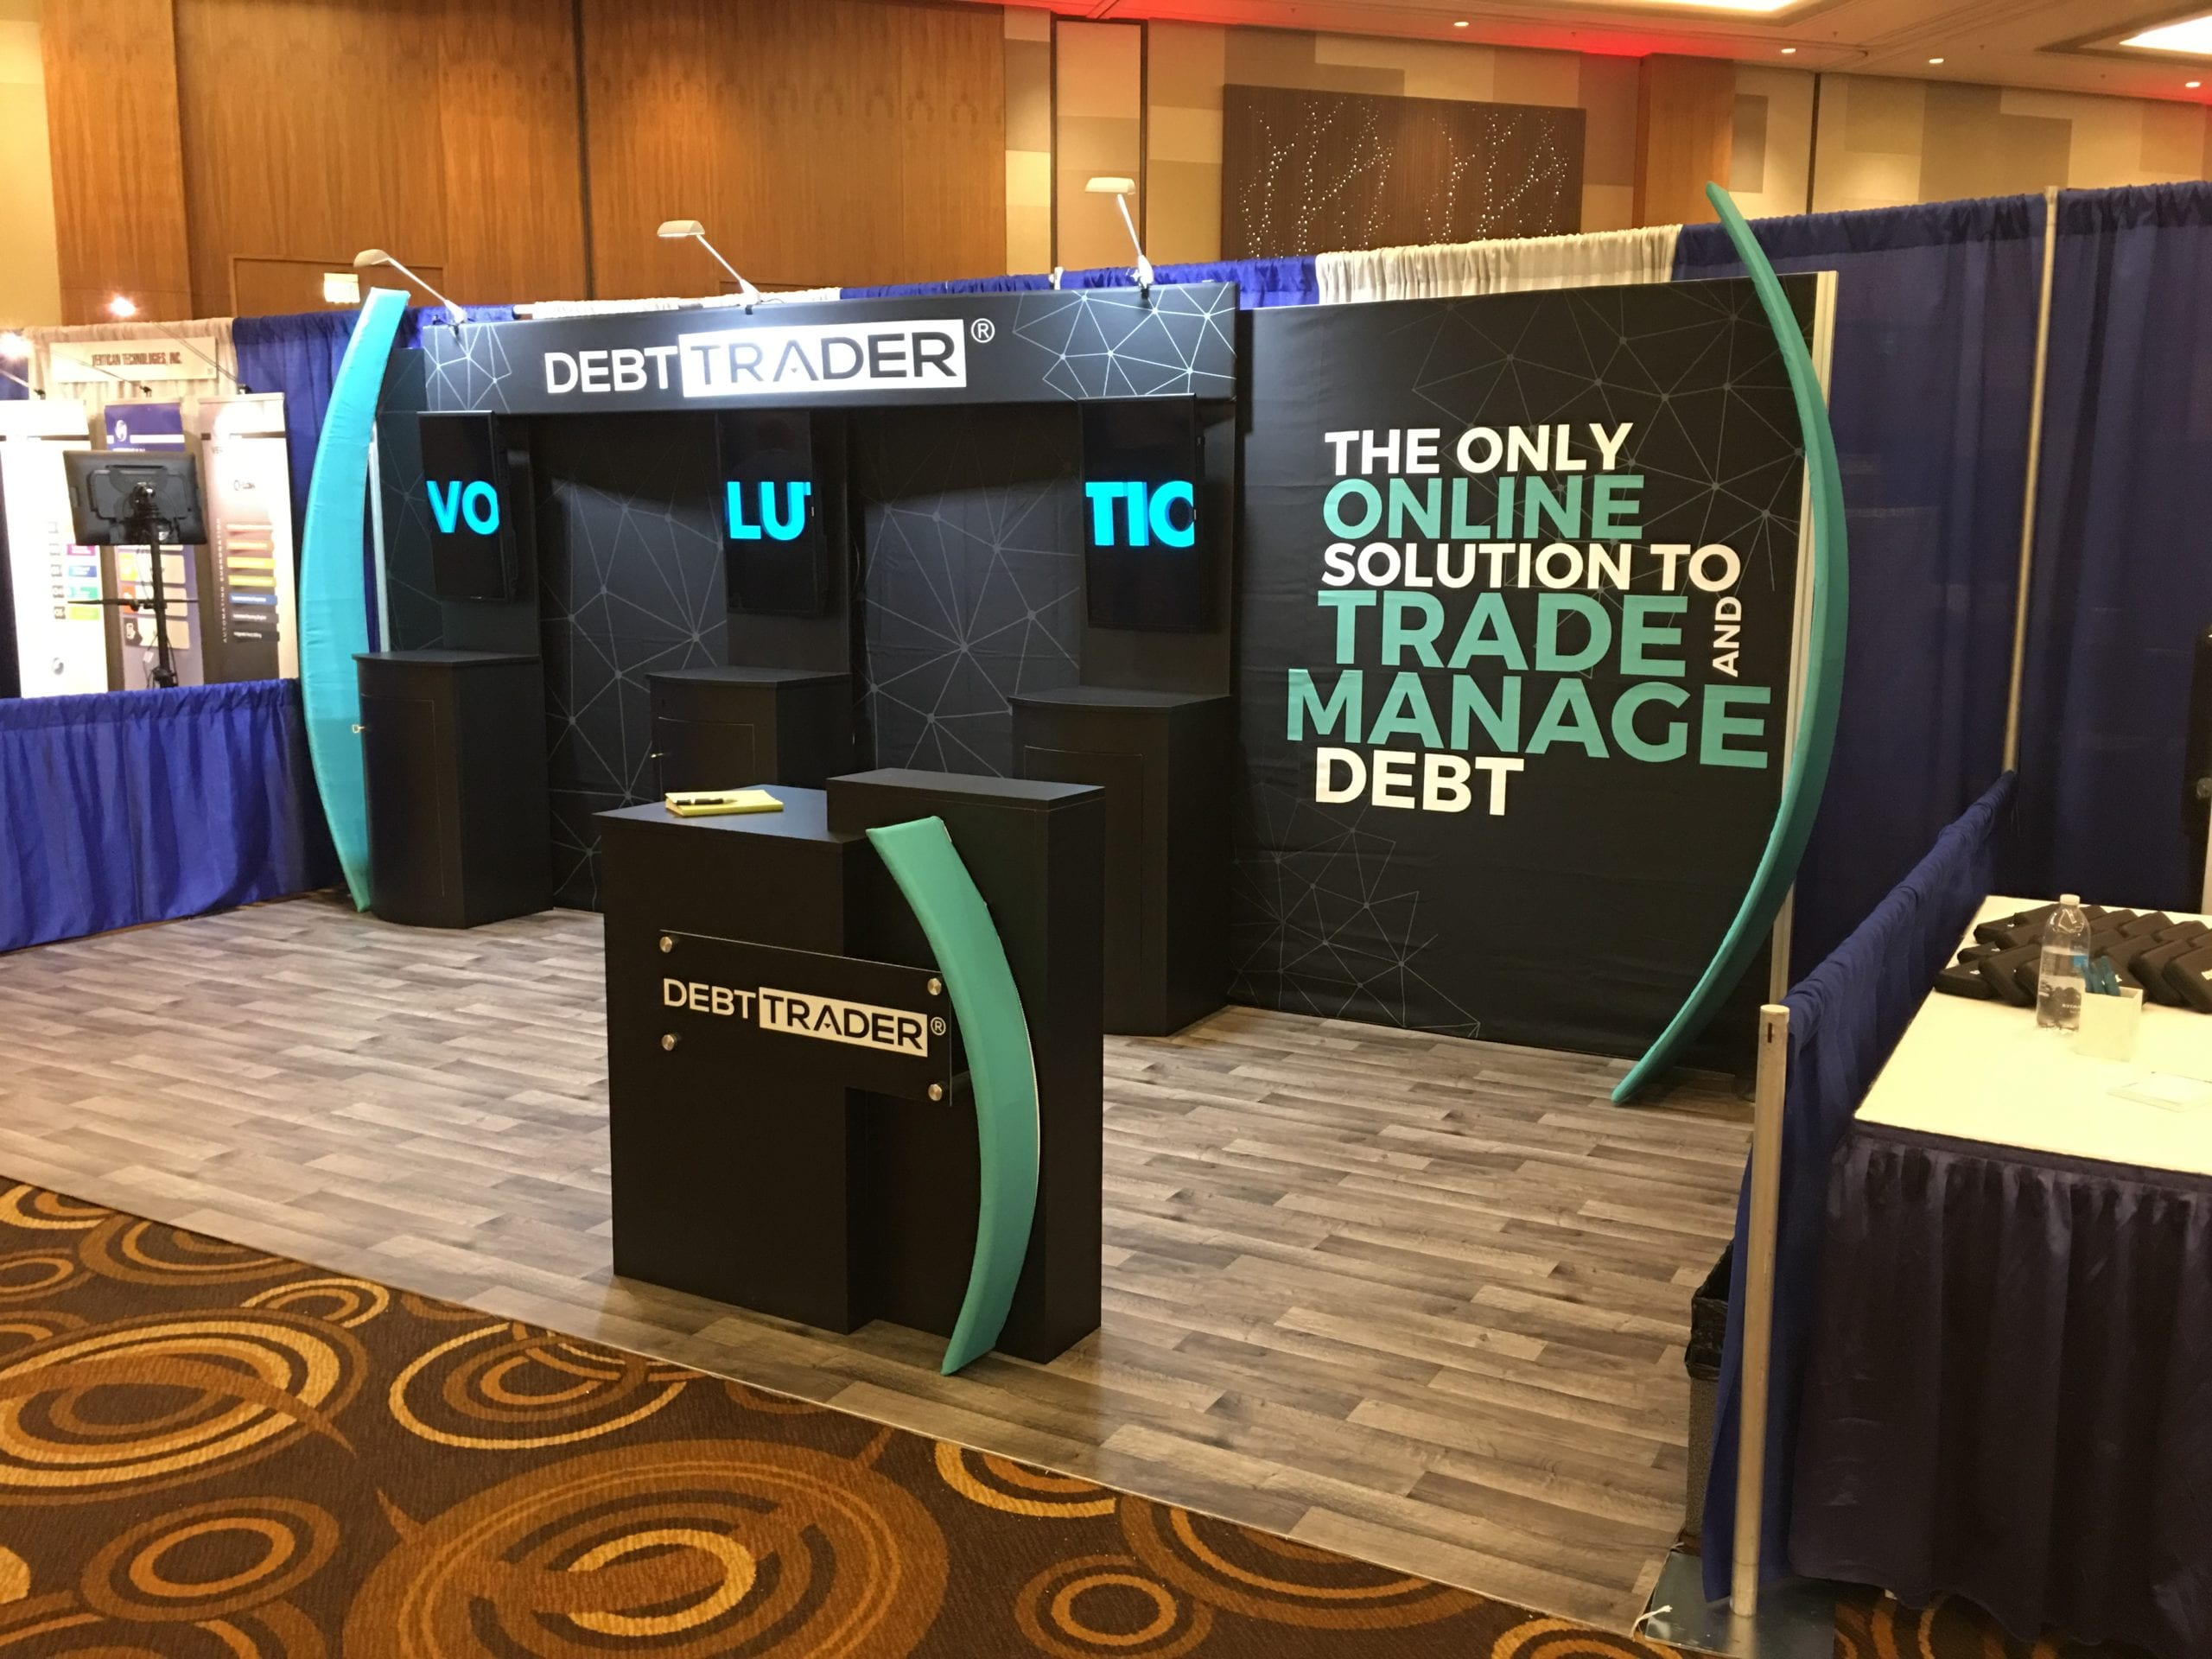 The DebtTrader tradeshow booth